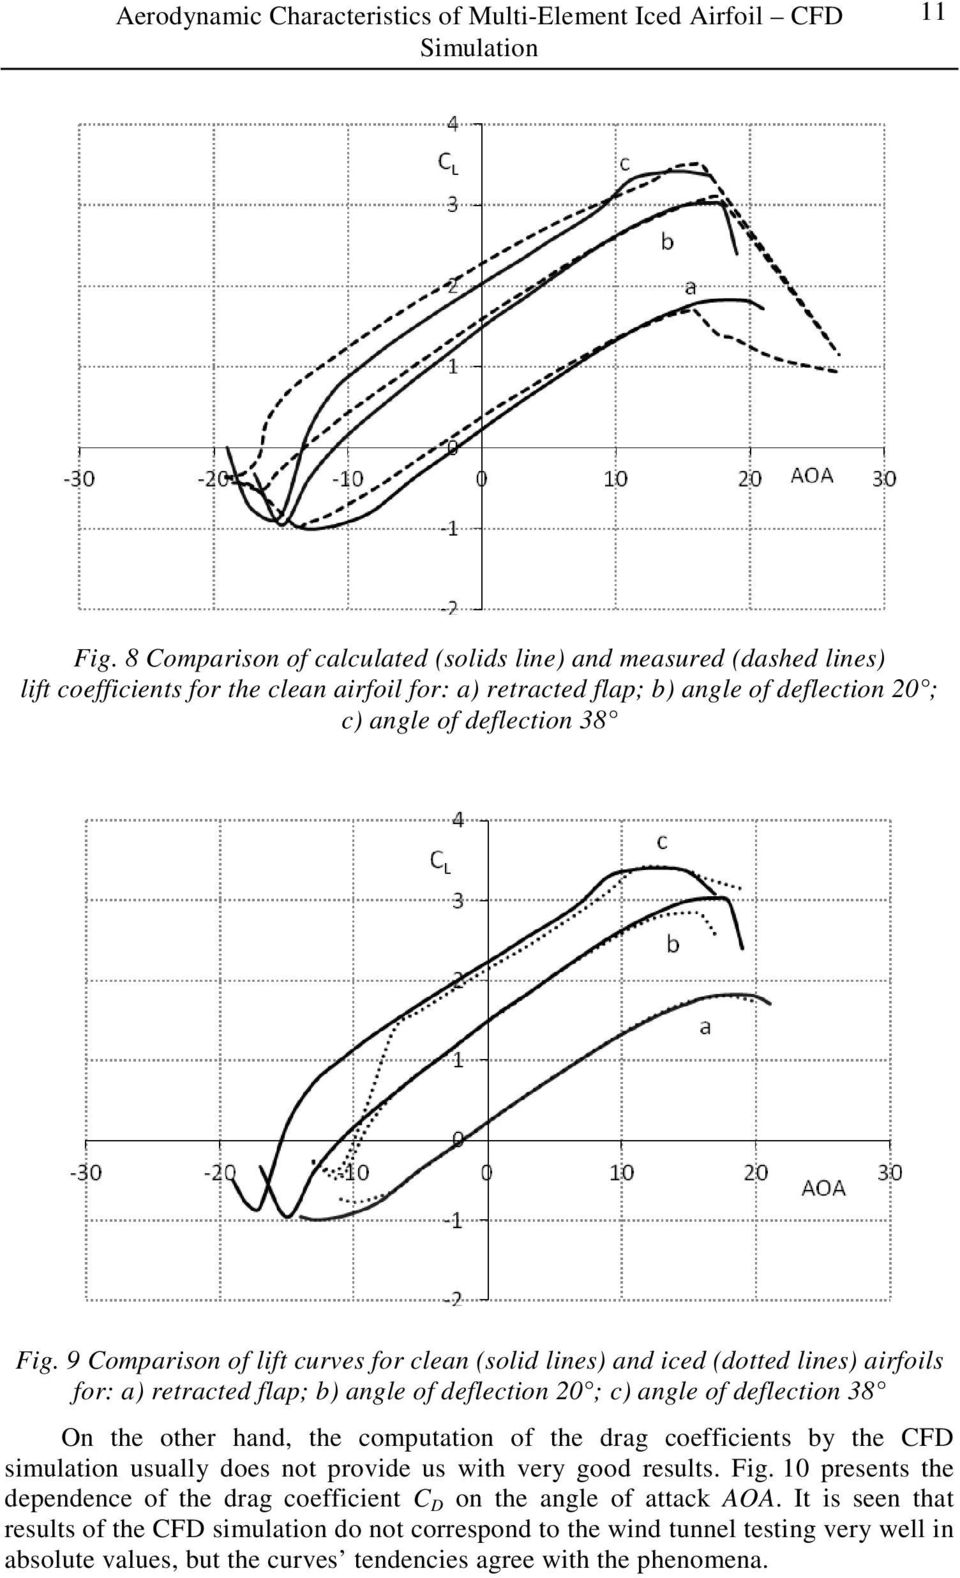 9 Comparison of lift curves for clean (solid lines) and iced (dotted lines) airfoils for: a) retracted flap; b) angle of deflection 20 ; c) angle of deflection 38 On the other hand, the computation